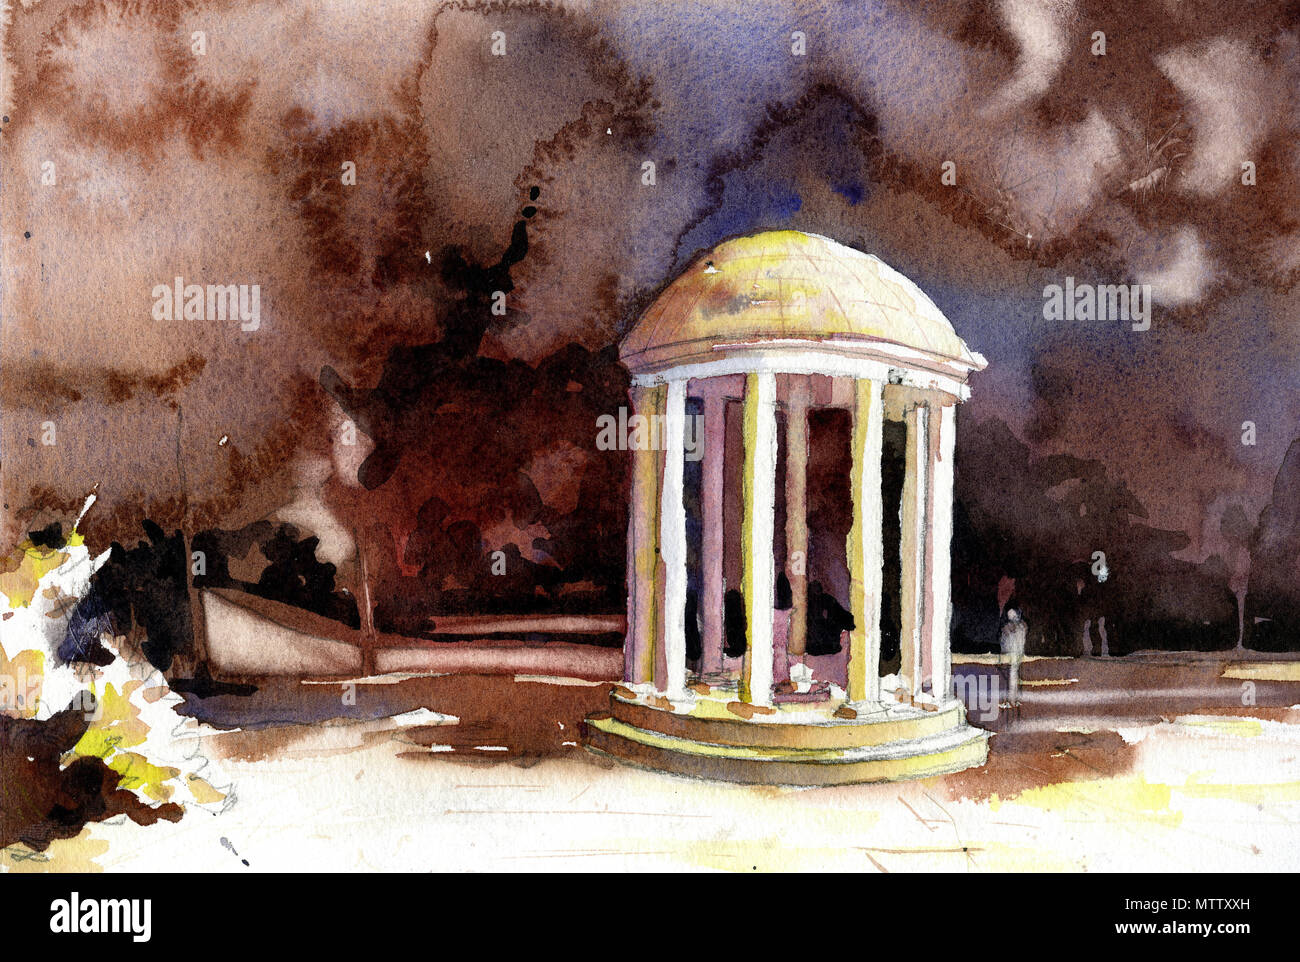 Watercolor painting of Old Well on University of North Carolina (UNC)- Chapel Hill, NC - Stock Image